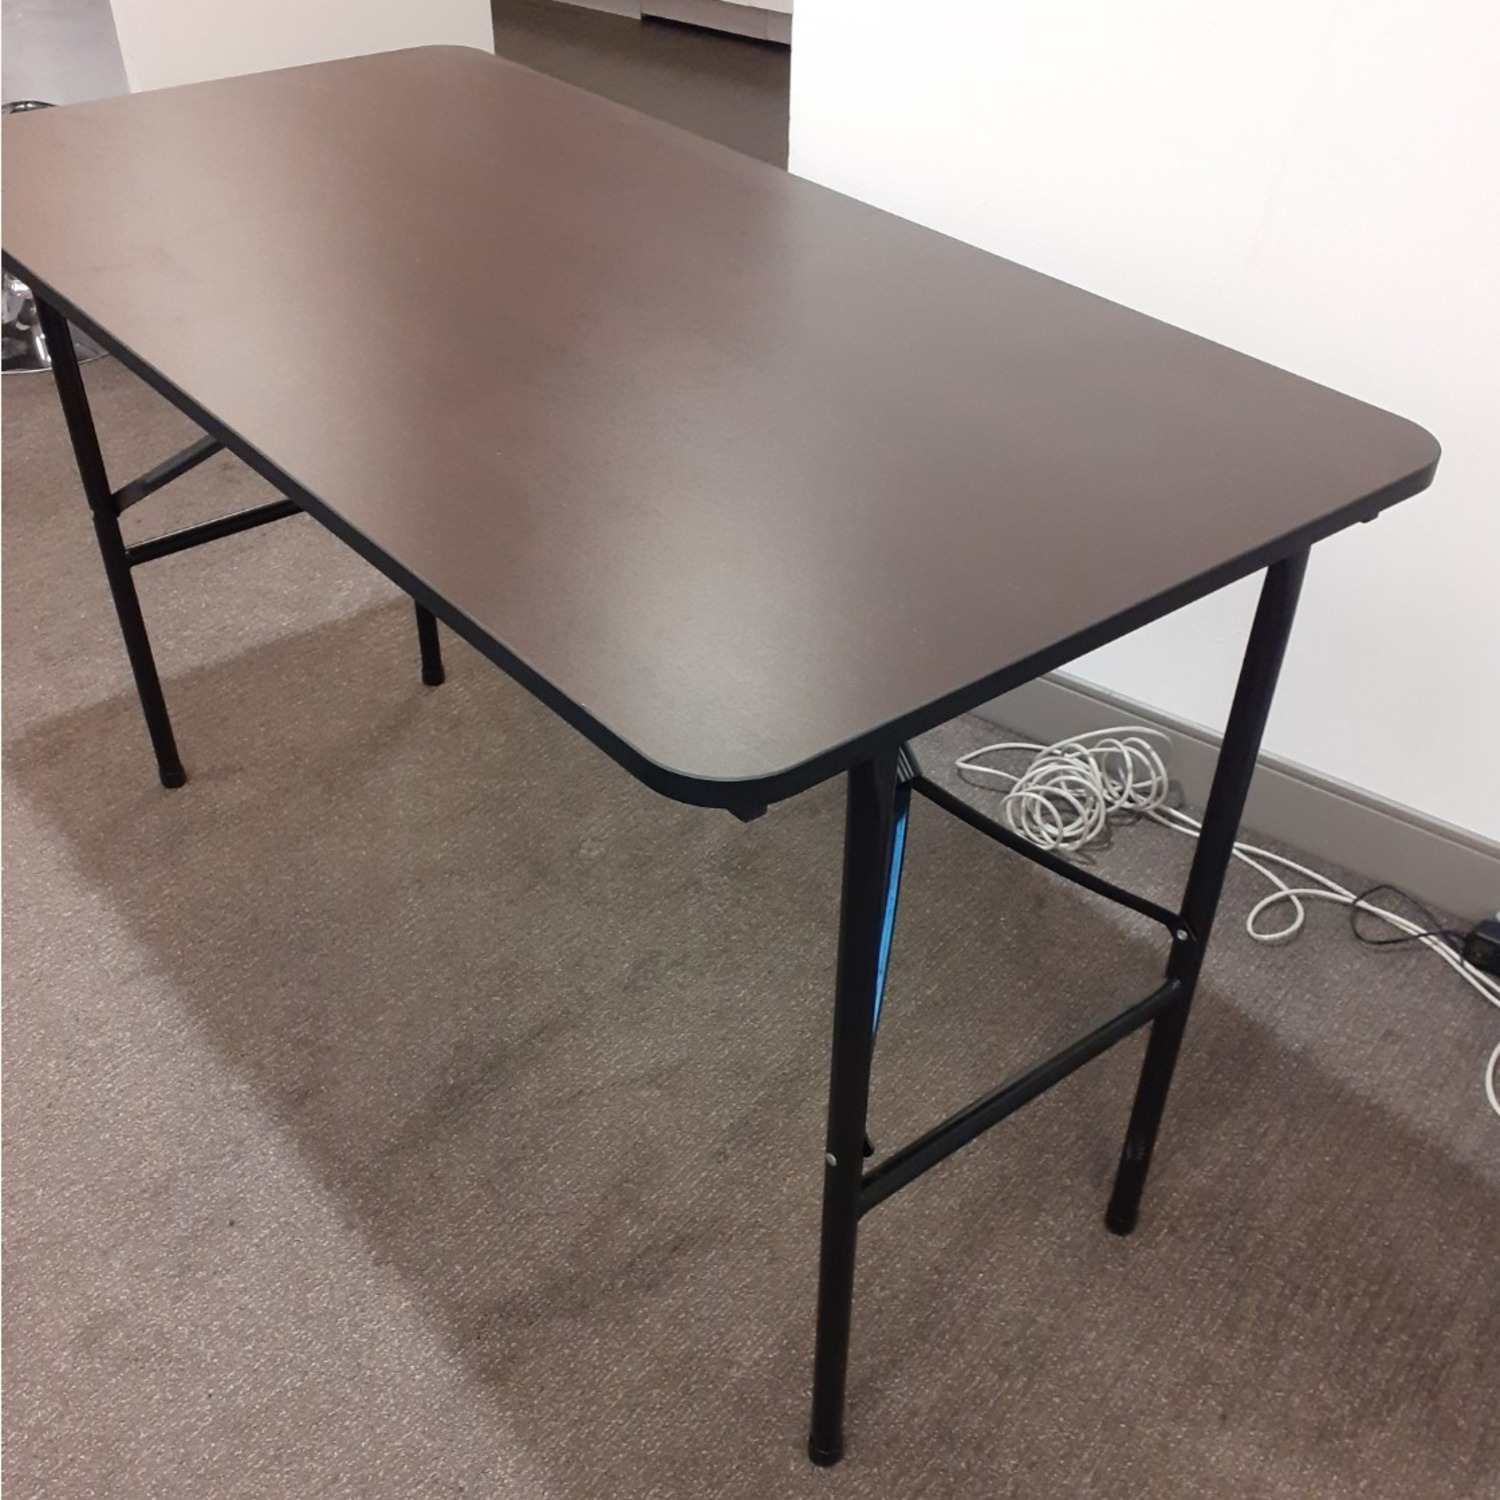 Iceberg Economy Rectangle Folding Table - image-1